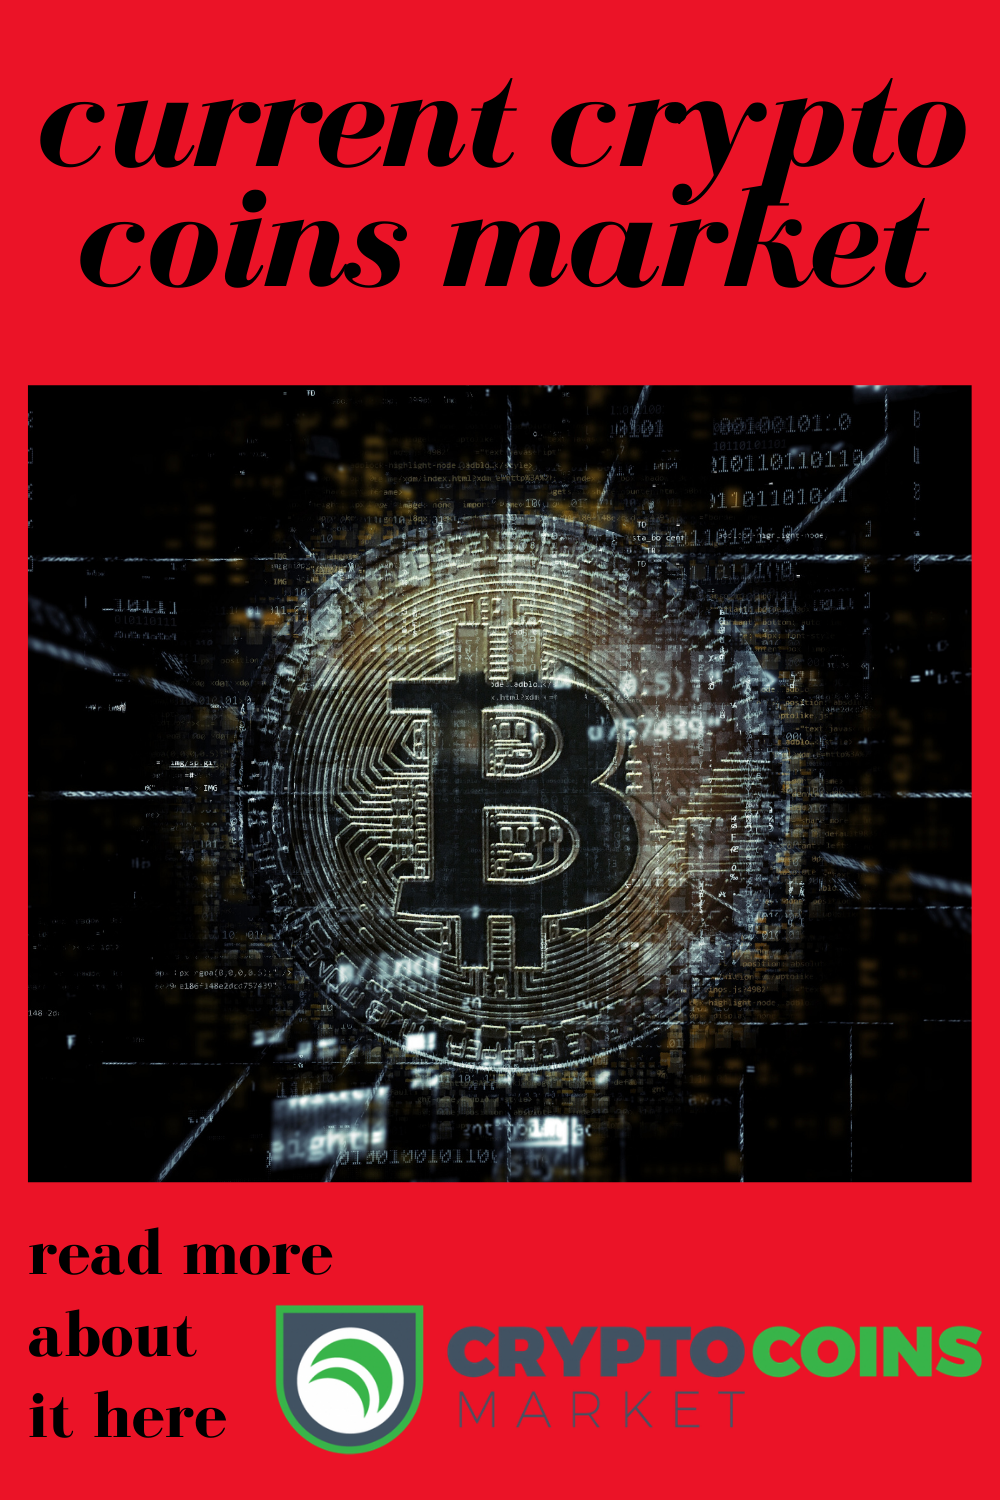 Current Crypto Coins Market Crypto Coins Market in 2020